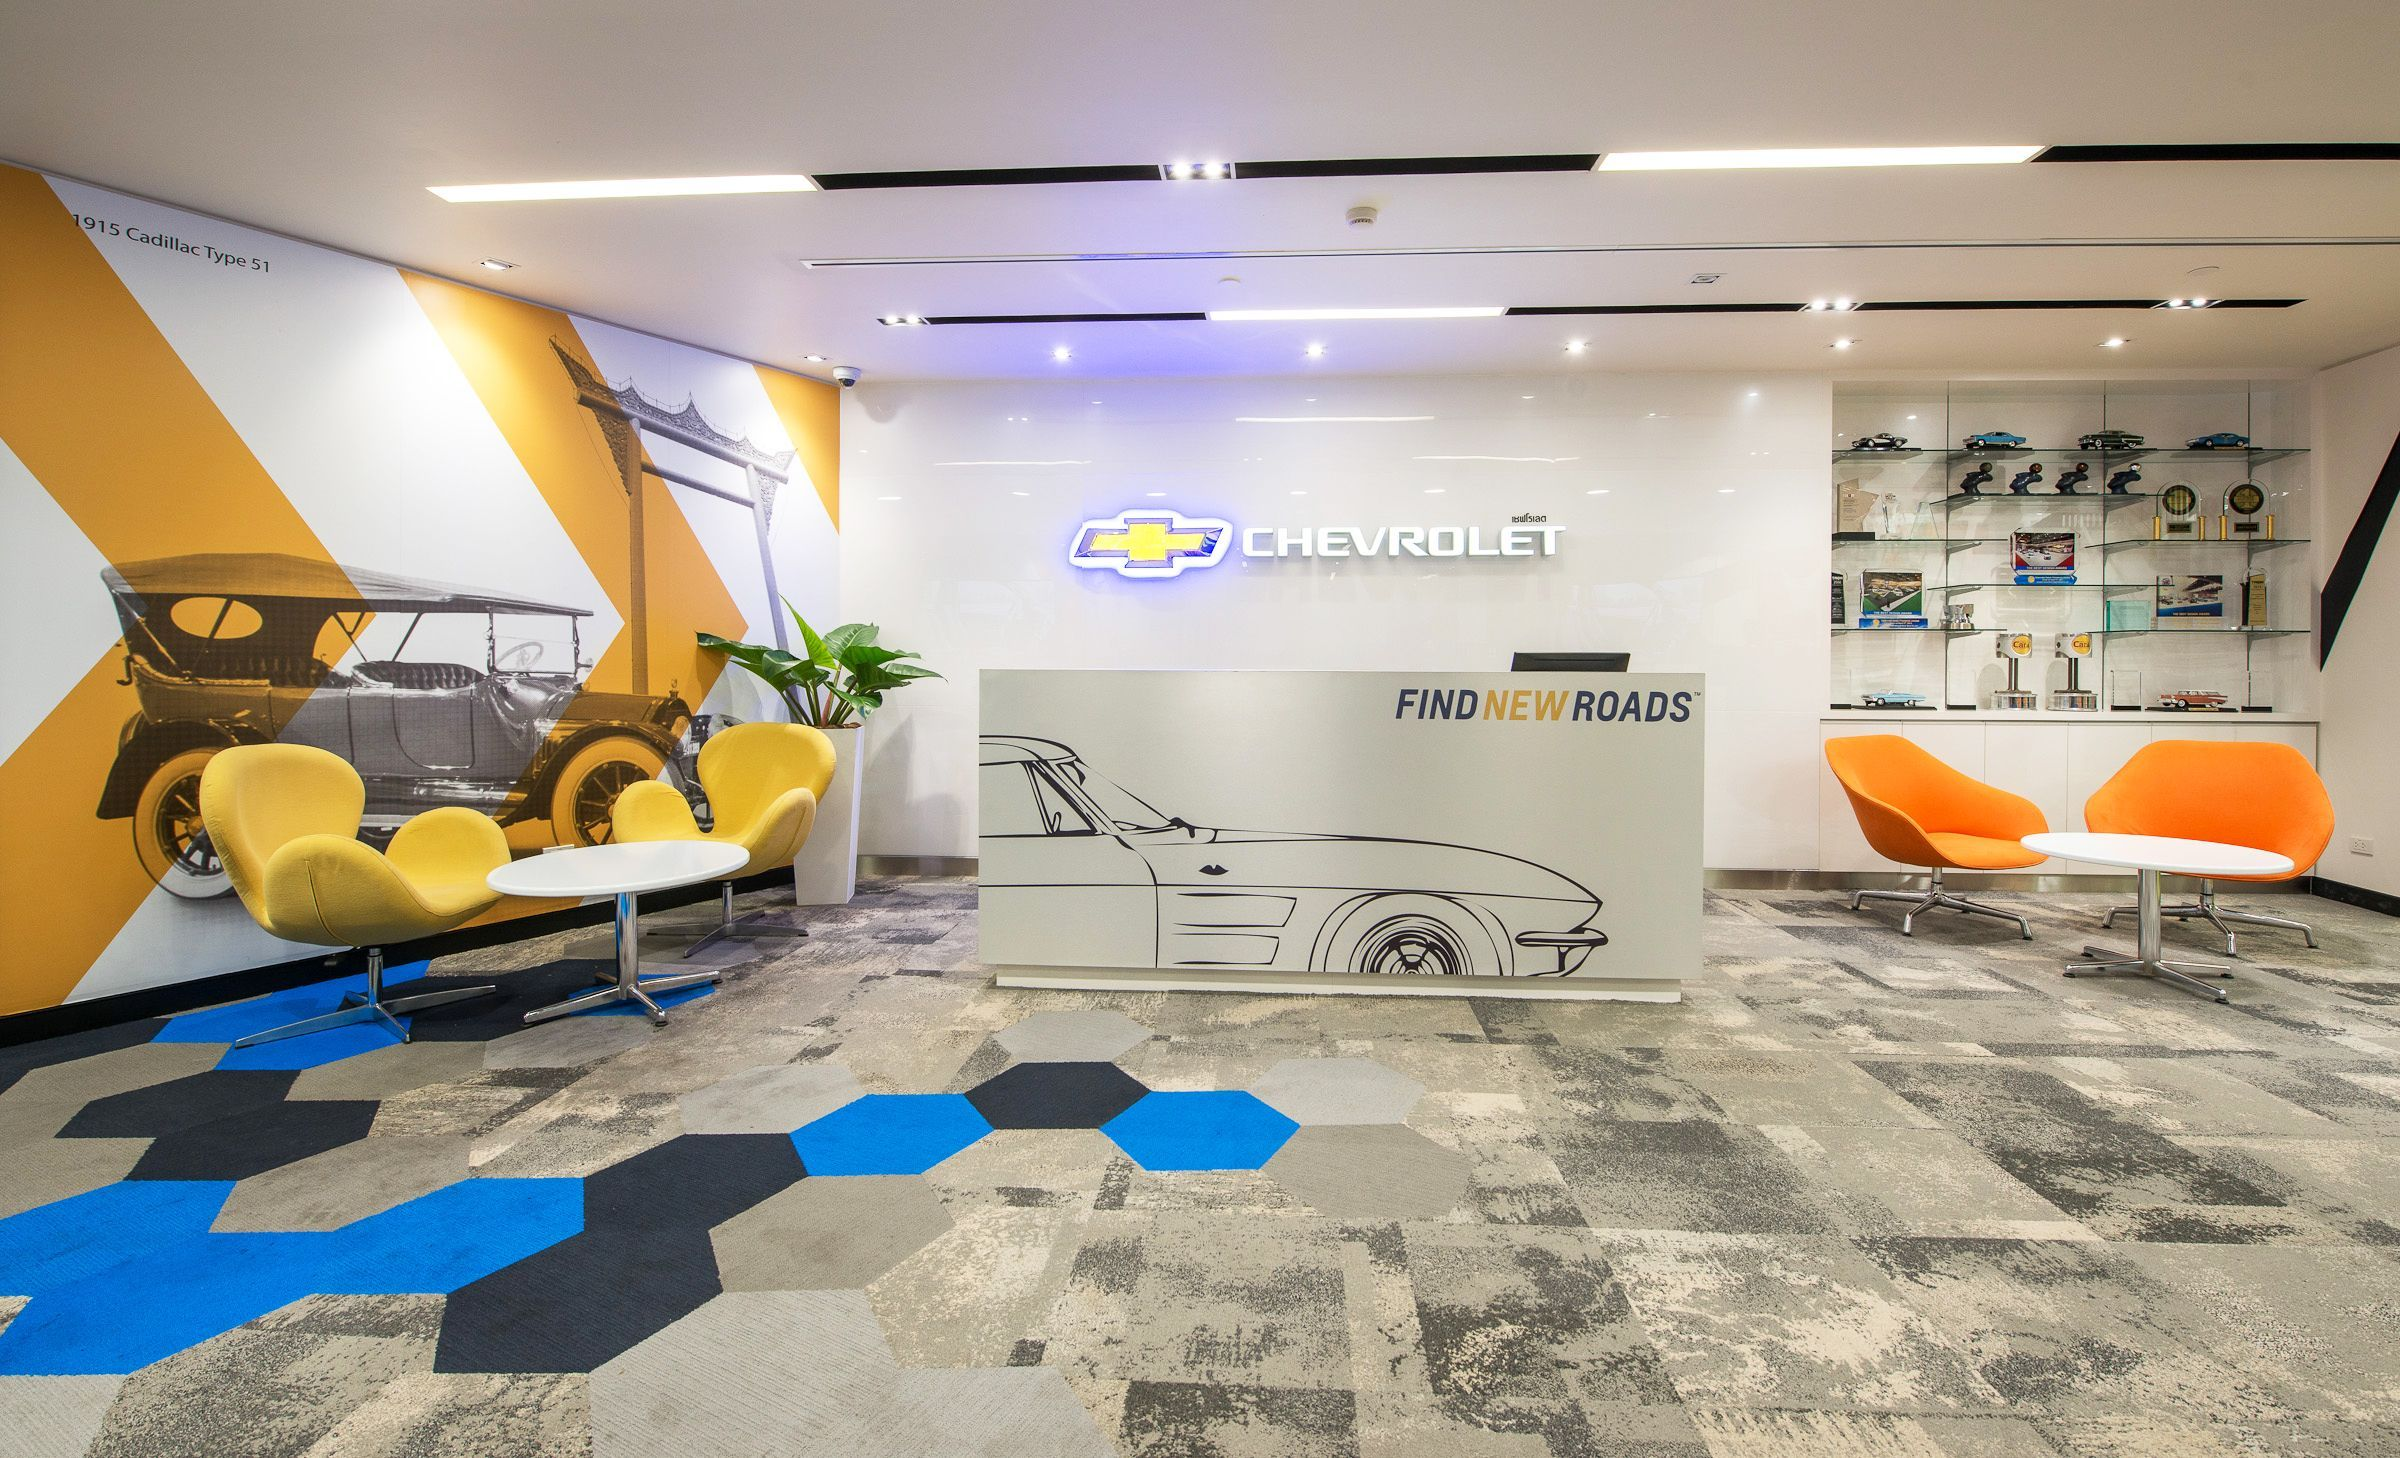 Interior Design By The Steven Leach Group. Steven Leach Group Designed A  New 2,000 Sq. M. Office Space For Chevrolet In Bangkok, Thailand.